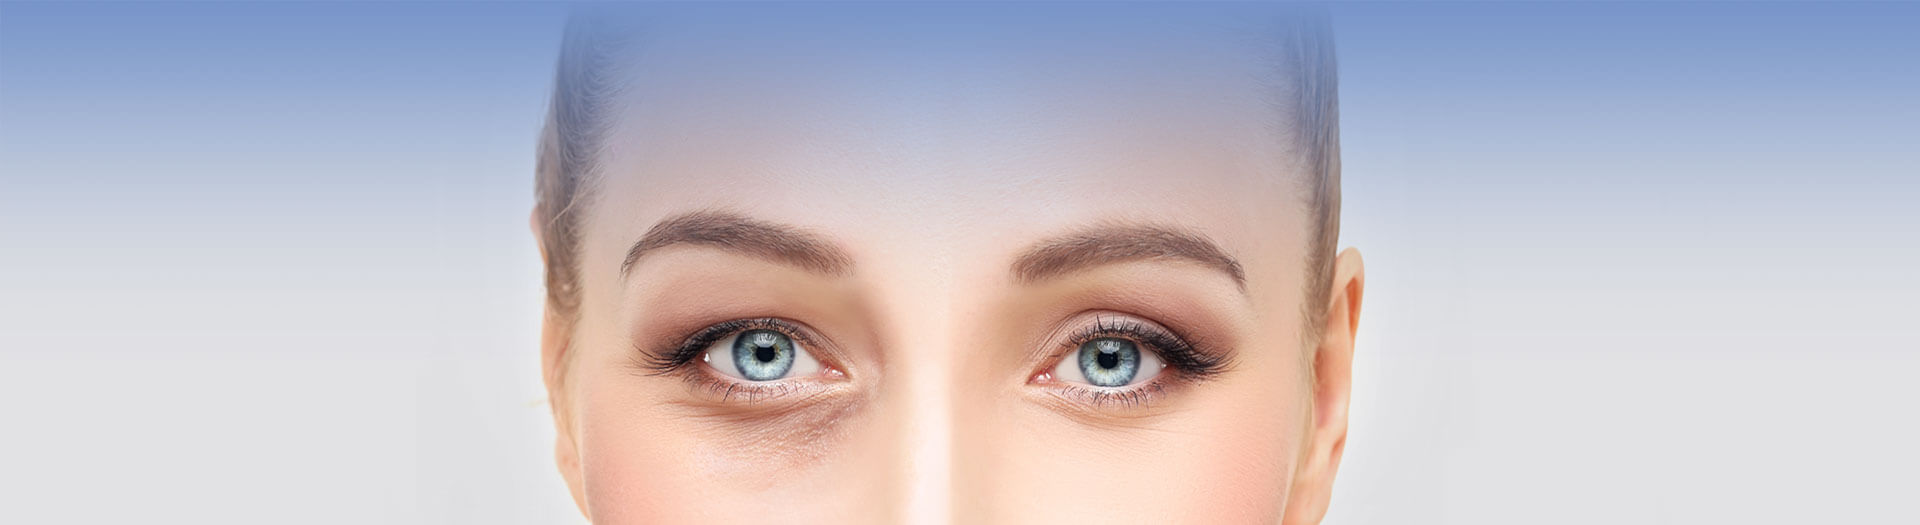 Closeup of a woman's face and her eyes